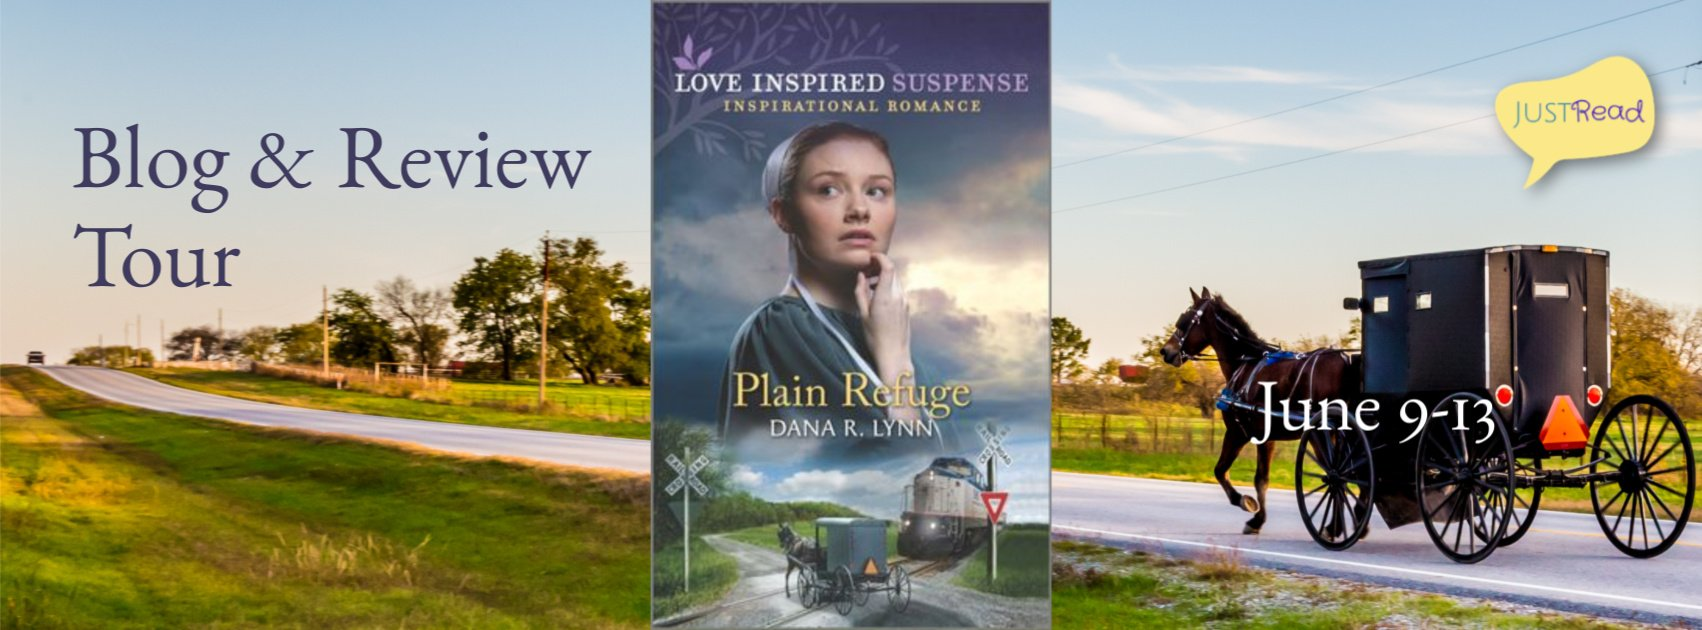 Plain Refuge Blog + Review Tour